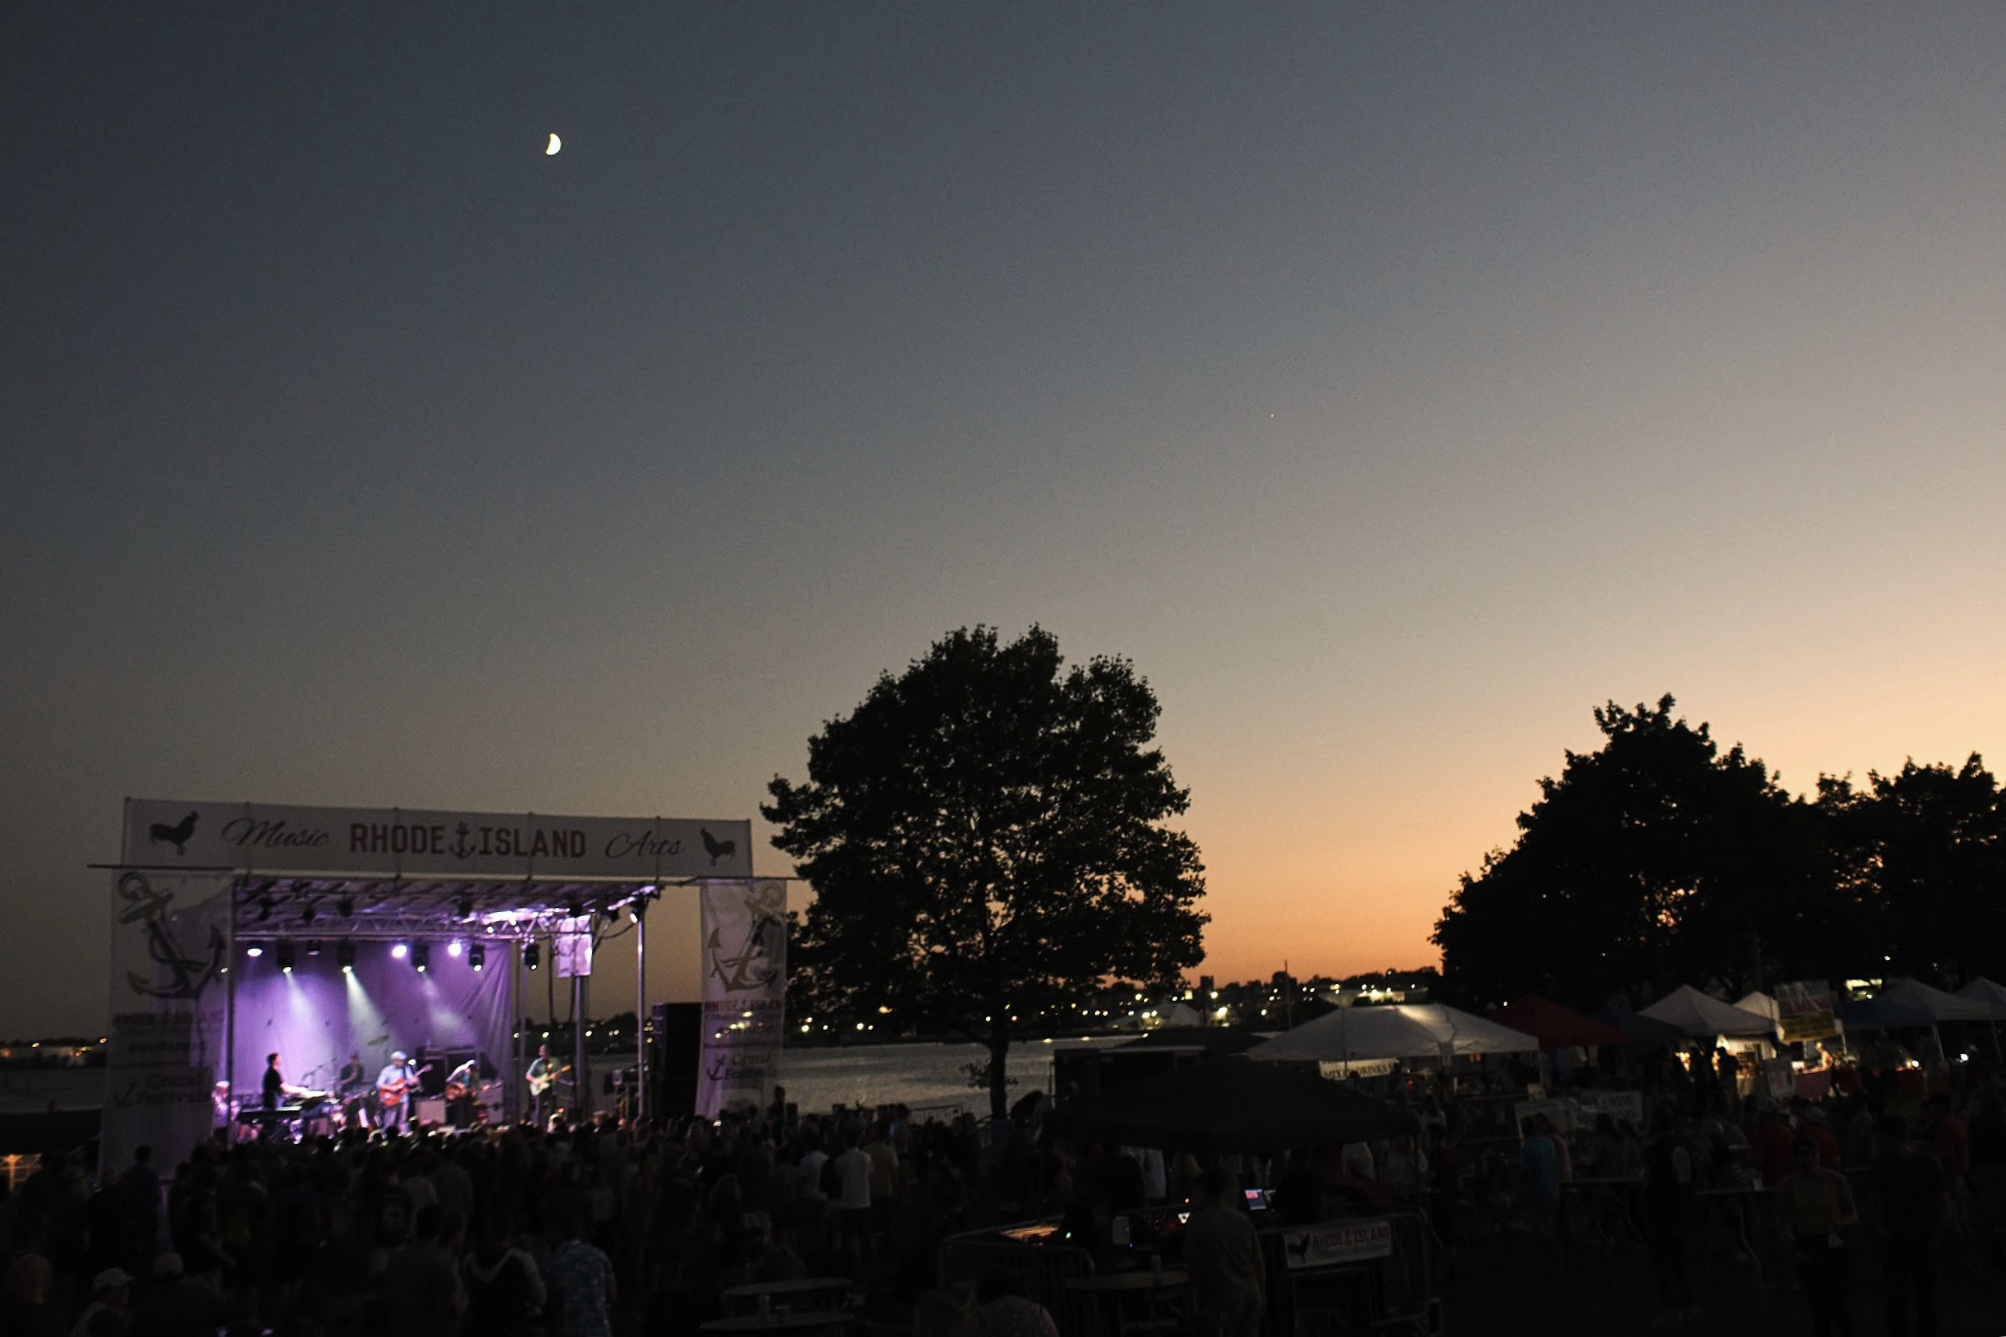 The sun sets over Providence during the 2018 Rhode Island Music & Arts Festival